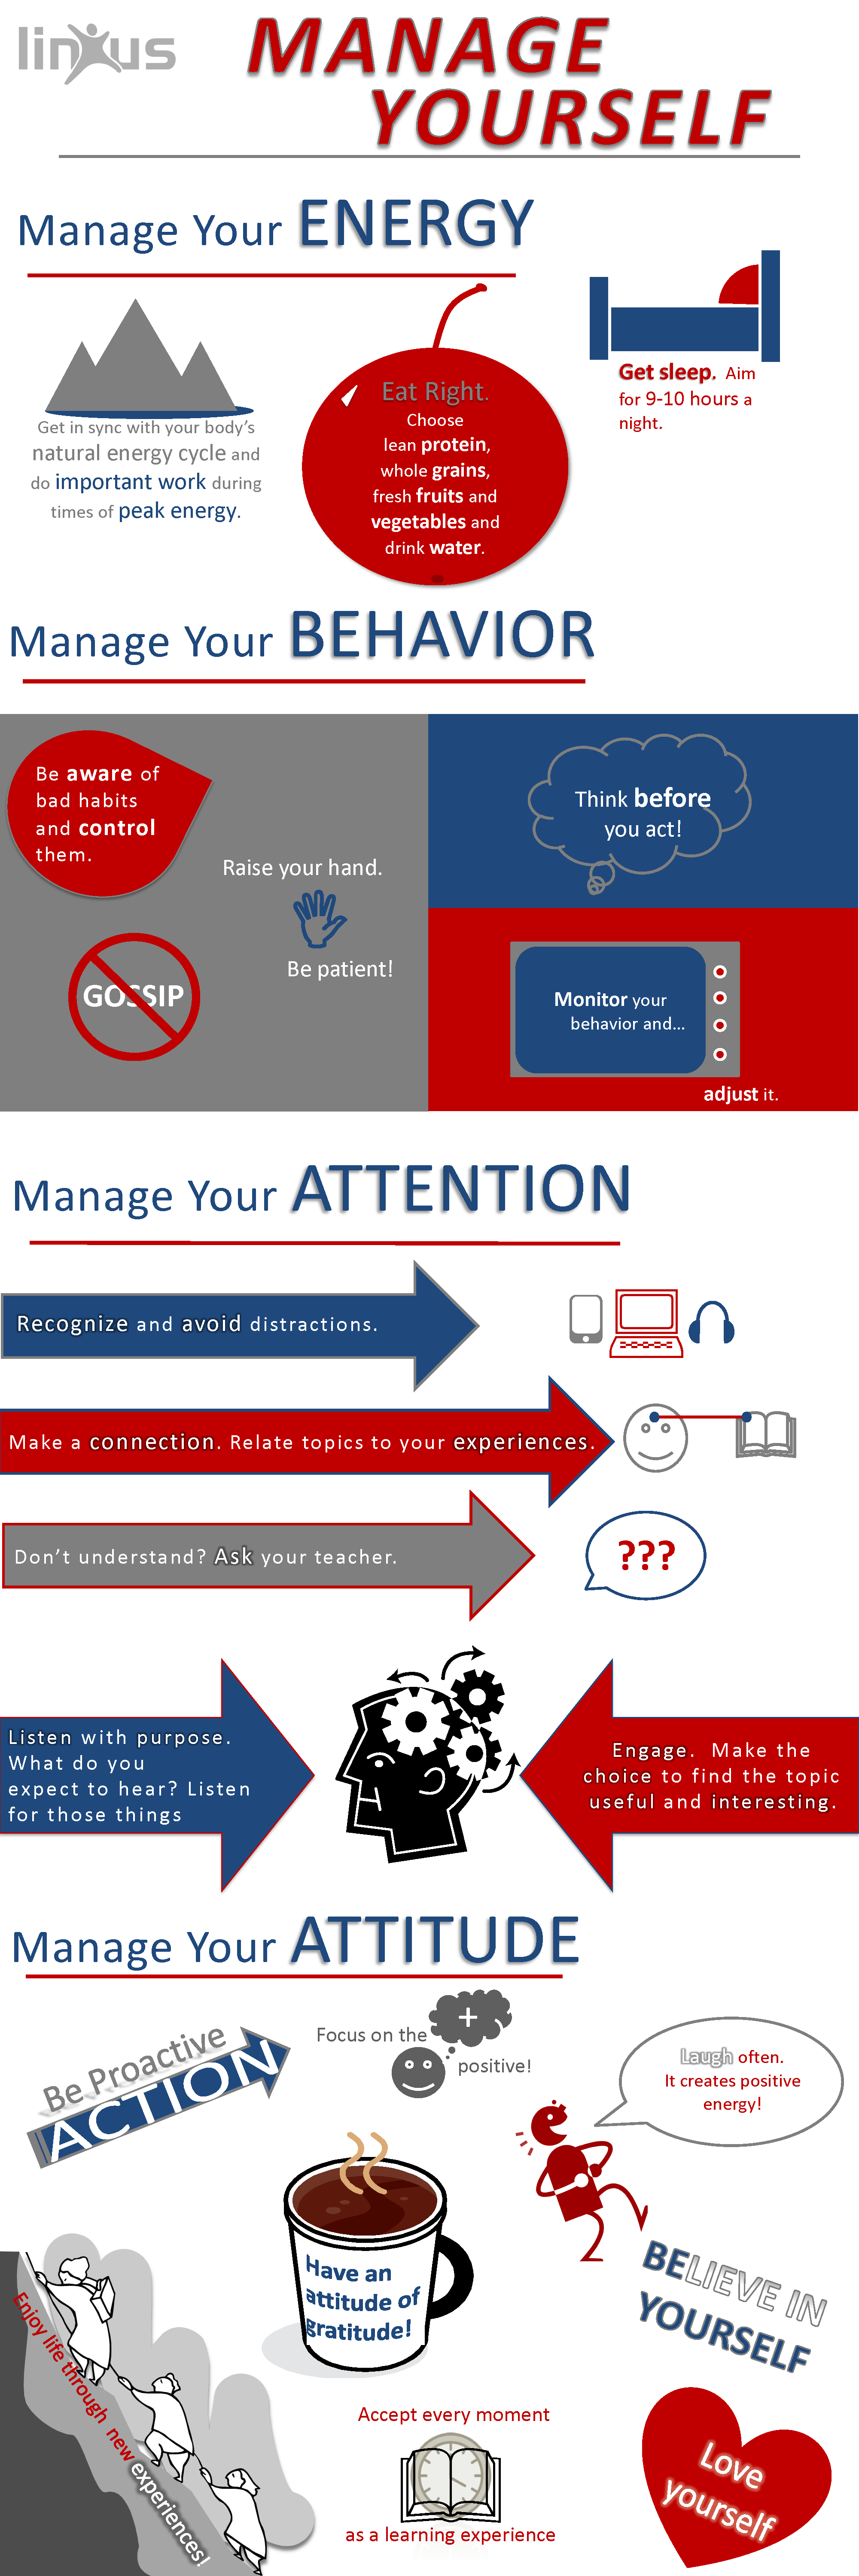 Manage Yourself_infographic